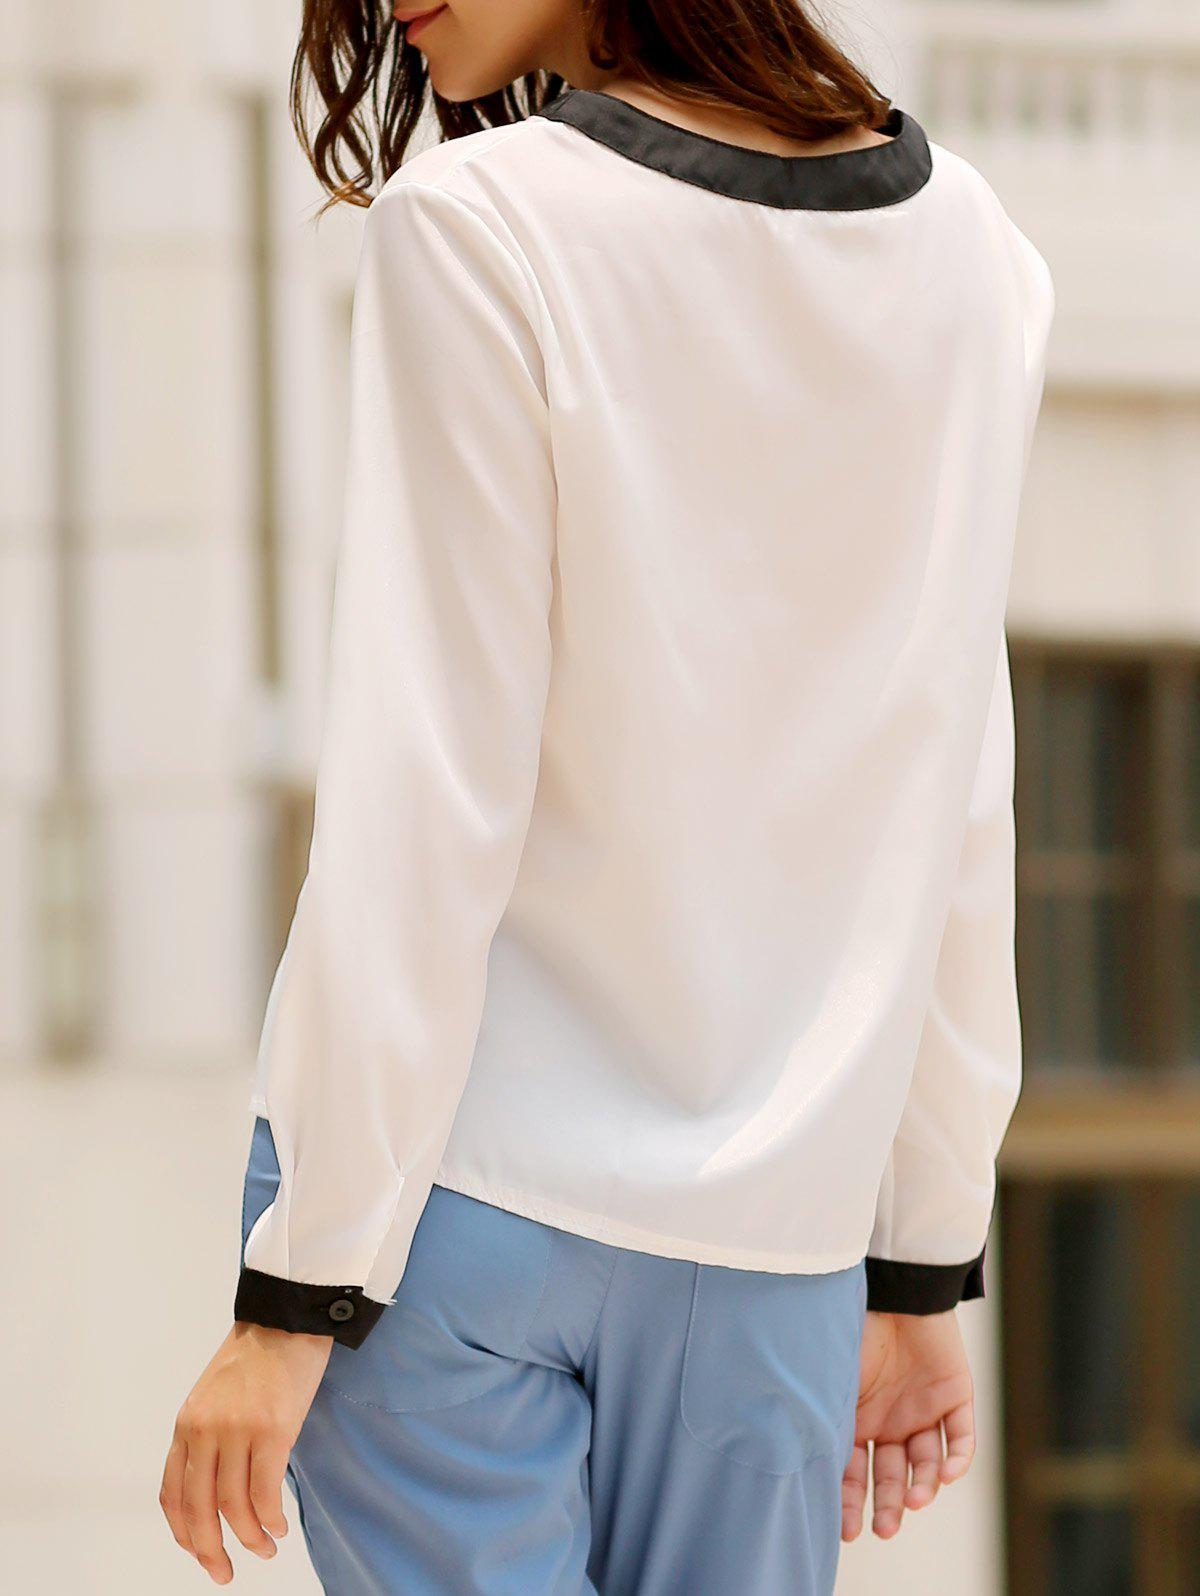 White Blouse With Round Collar 34